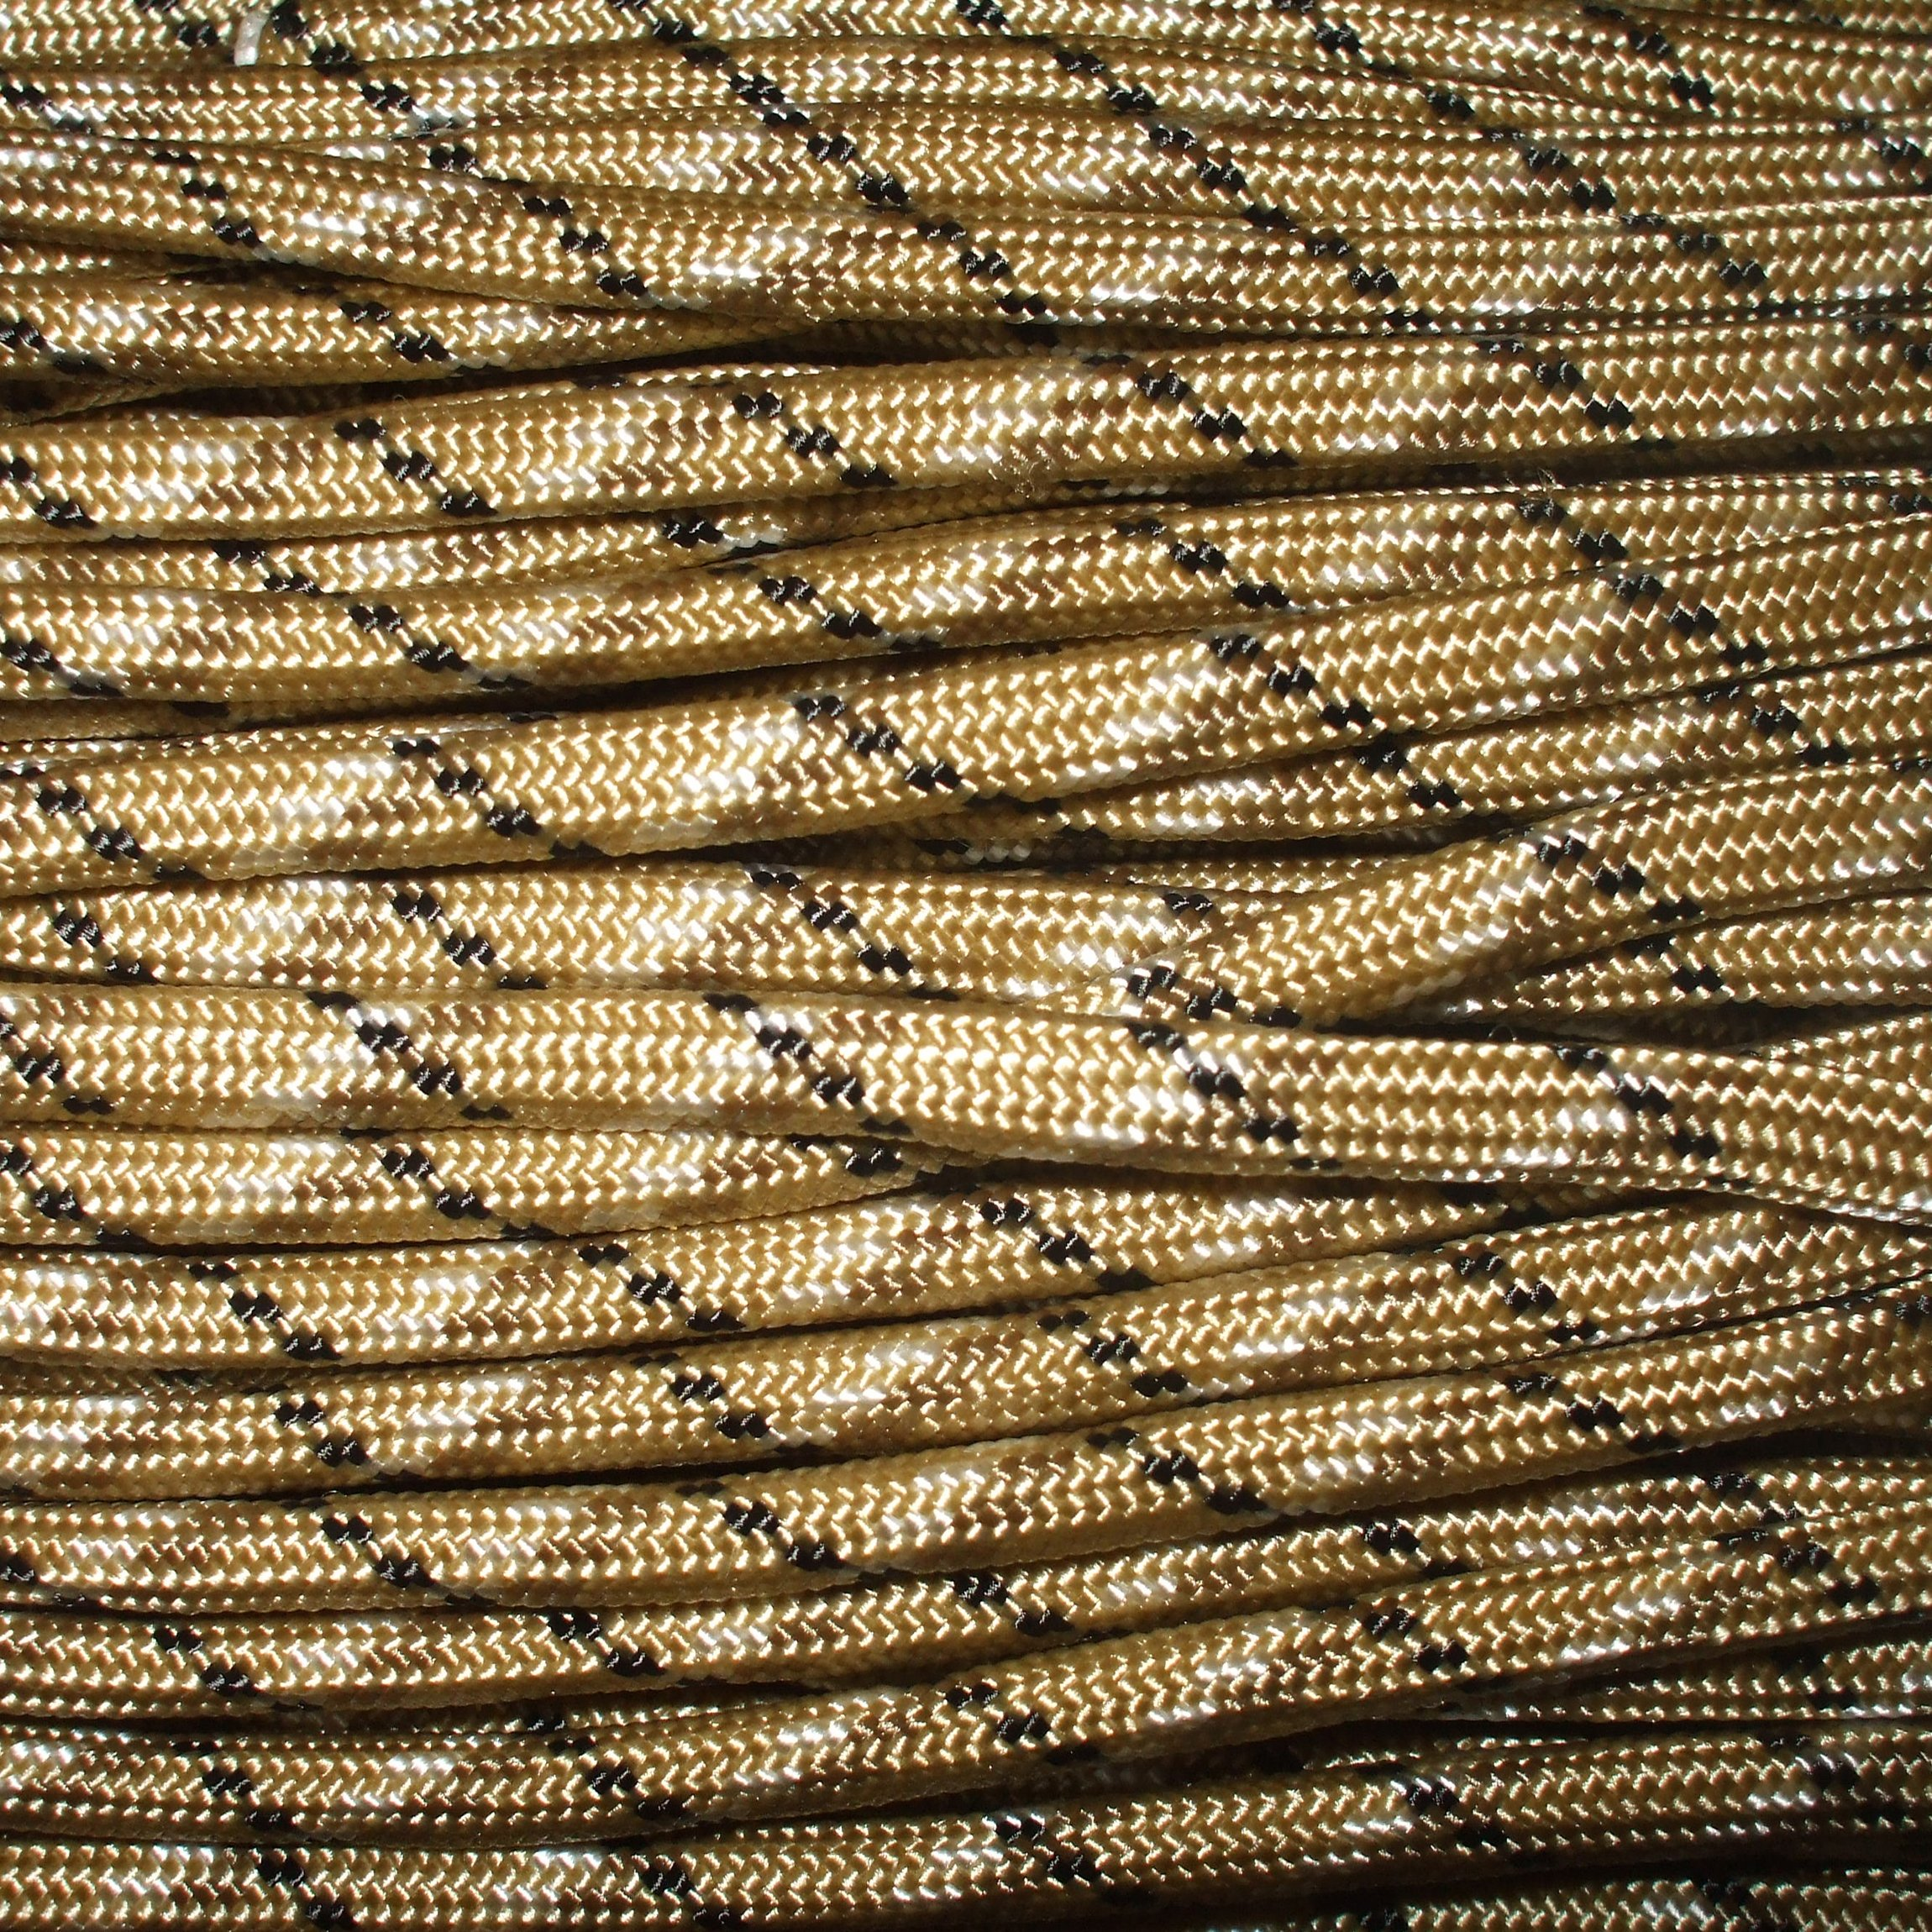 Army Universe Desert Camo 550LB Military Nylon Paracord Rope 100 Feet by Army Universe (Image #3)